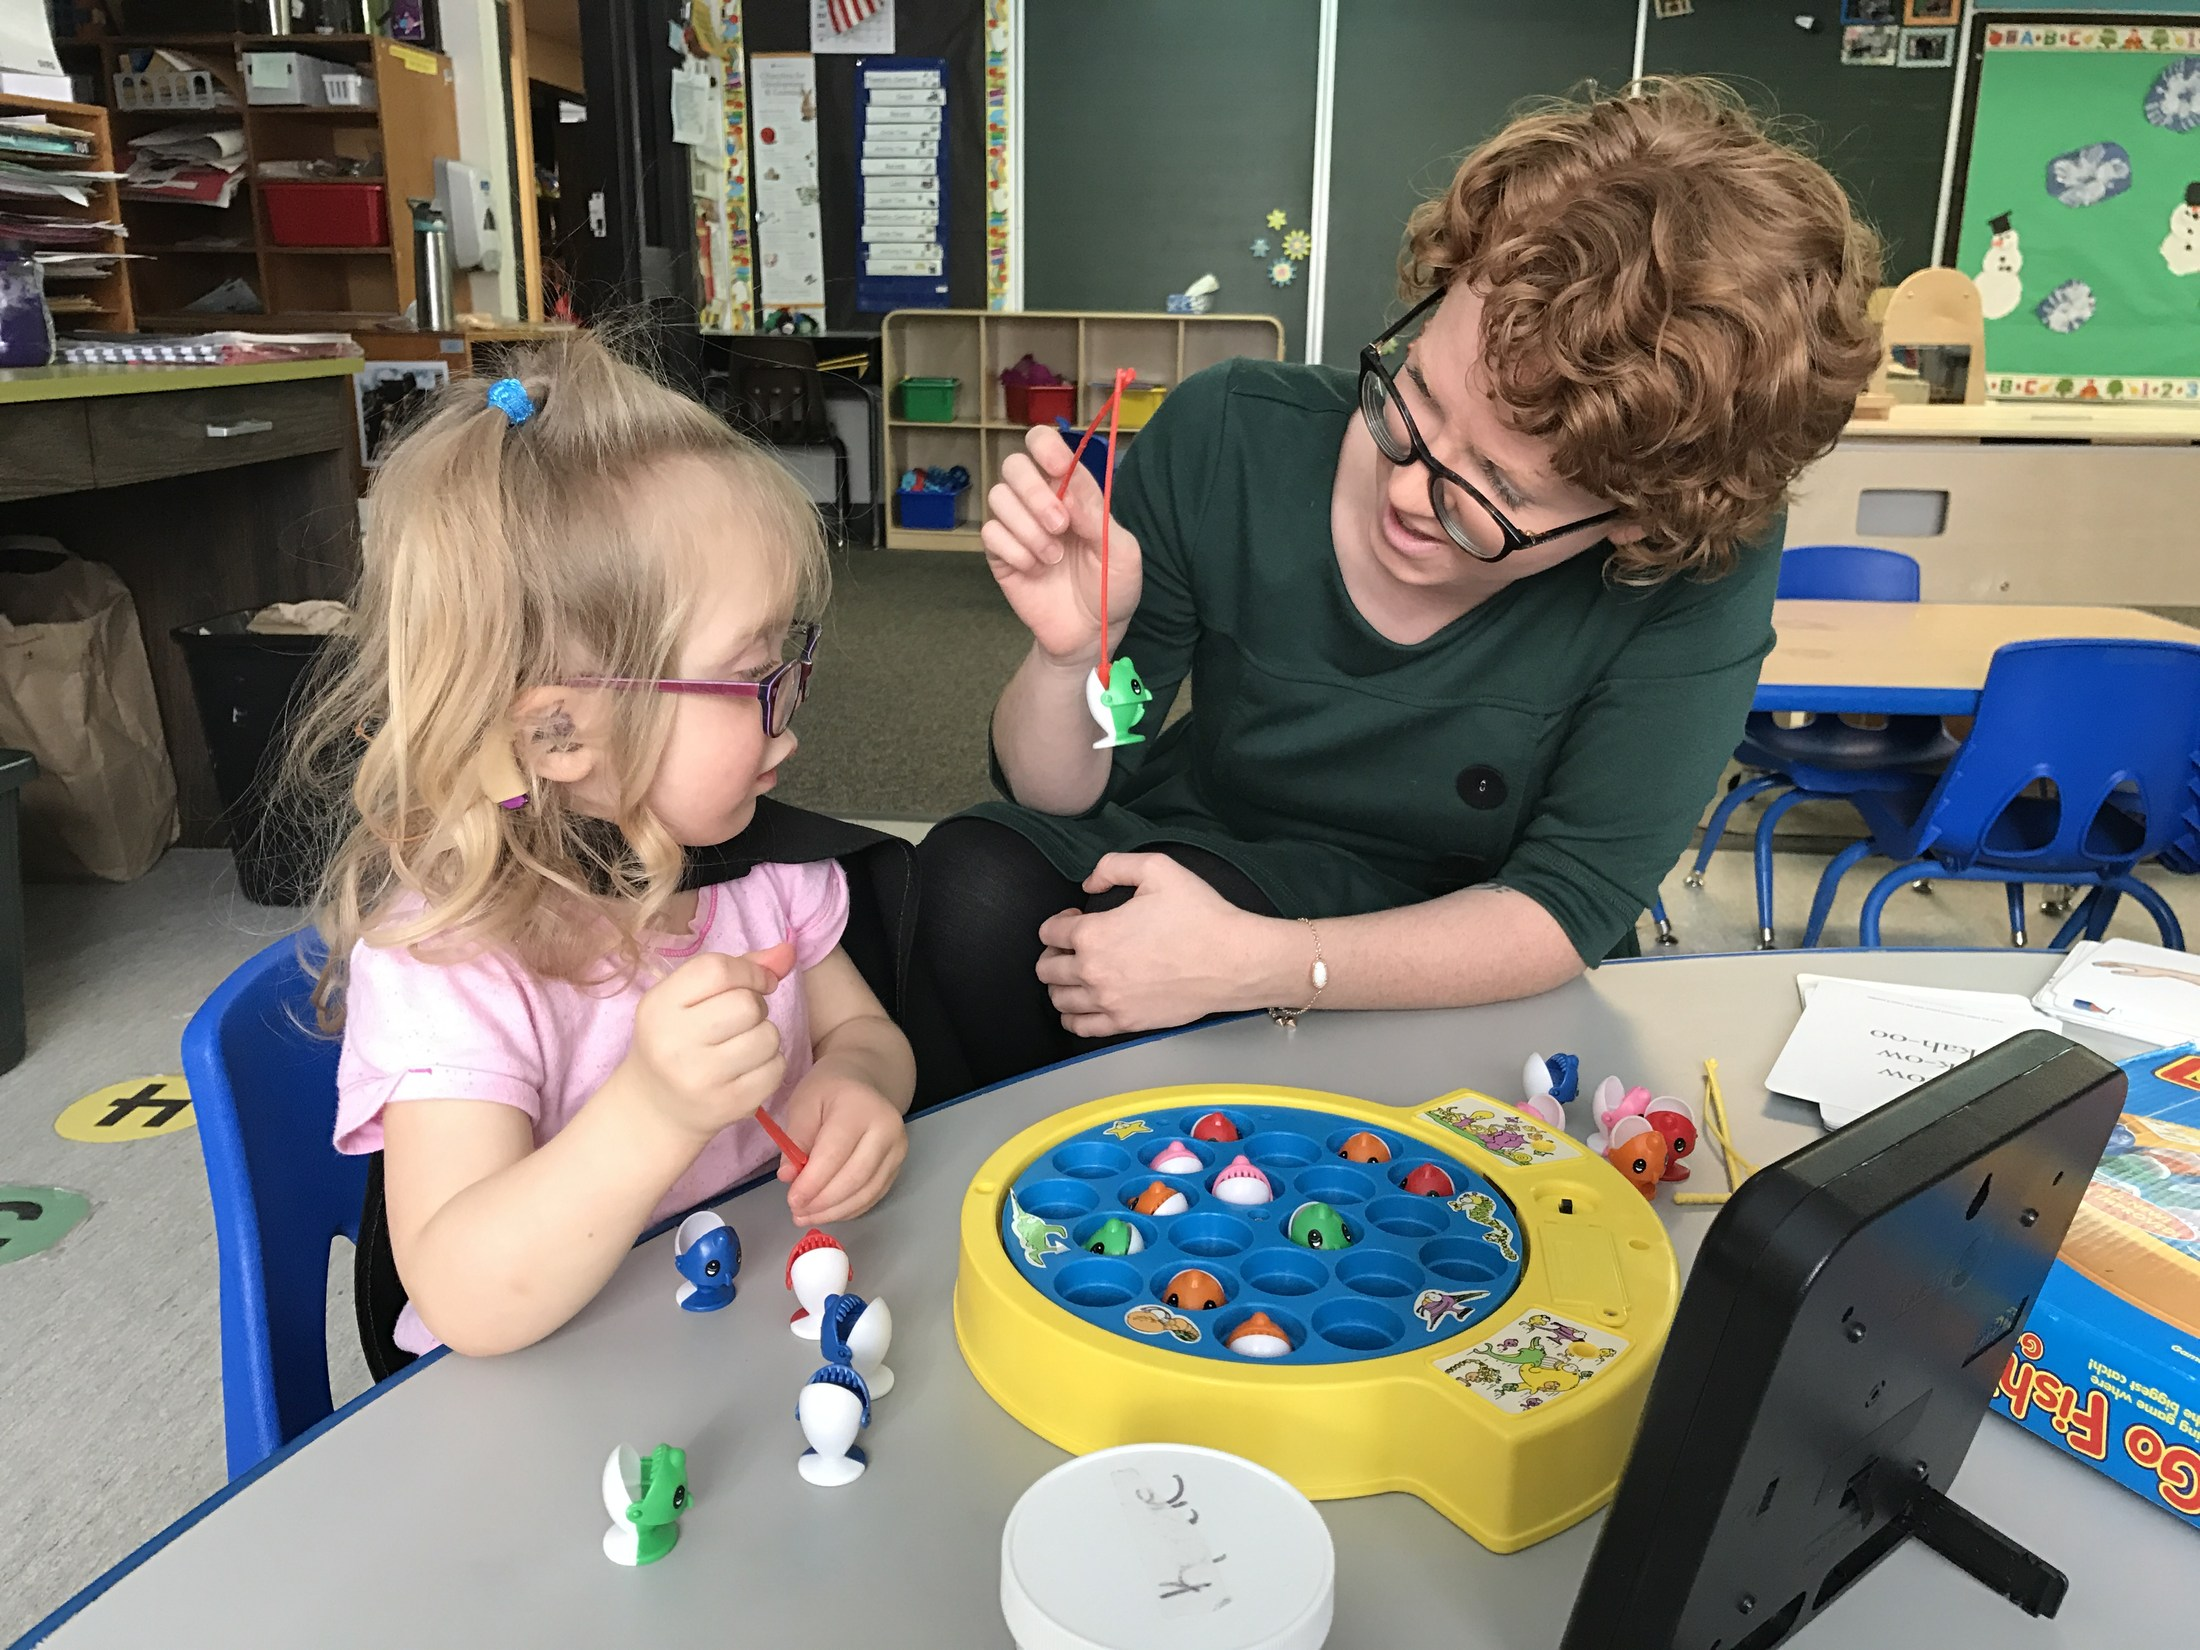 A speech language pathologist works one on one with a student.